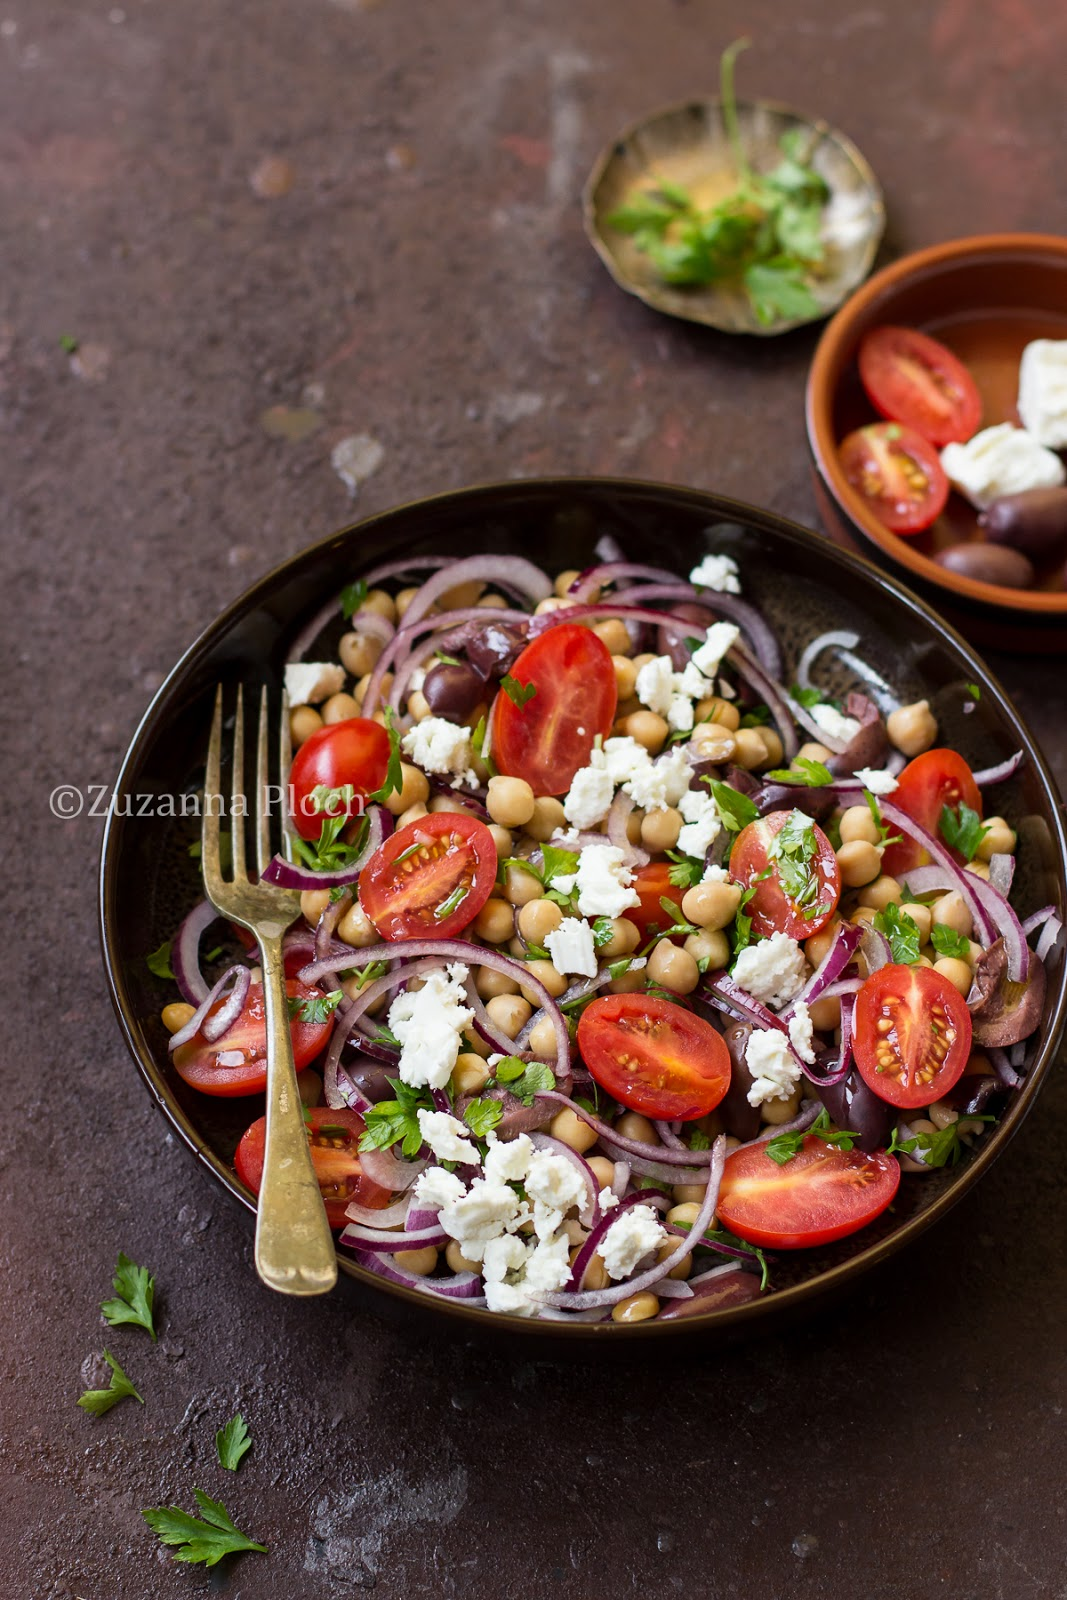 Chickpea salad - food photopgraphy by Zuzanna Ploch, fotografia kulinarna